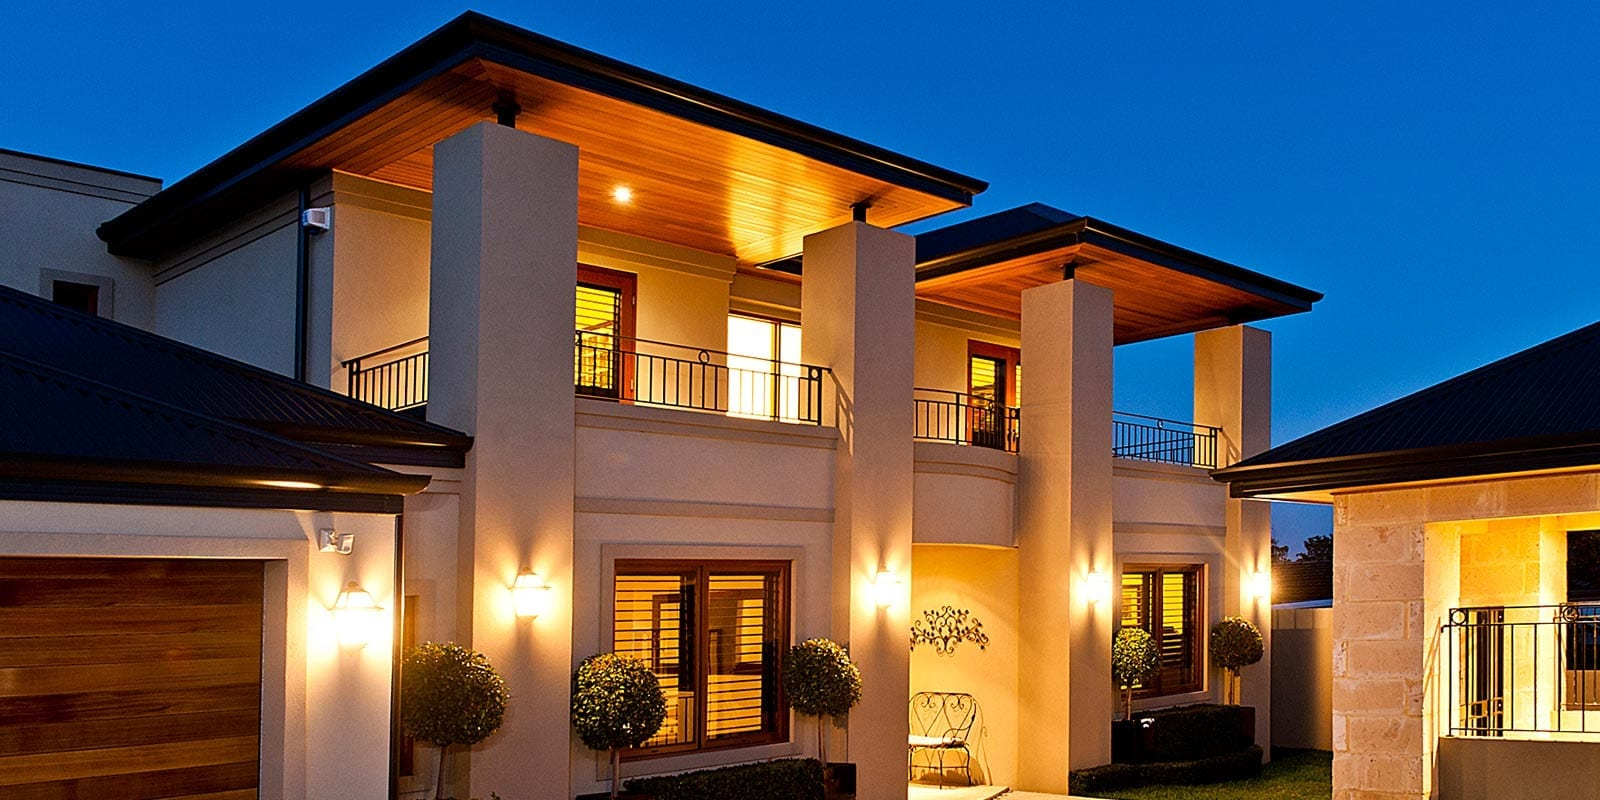 How luxury and quality homes go hand in hand